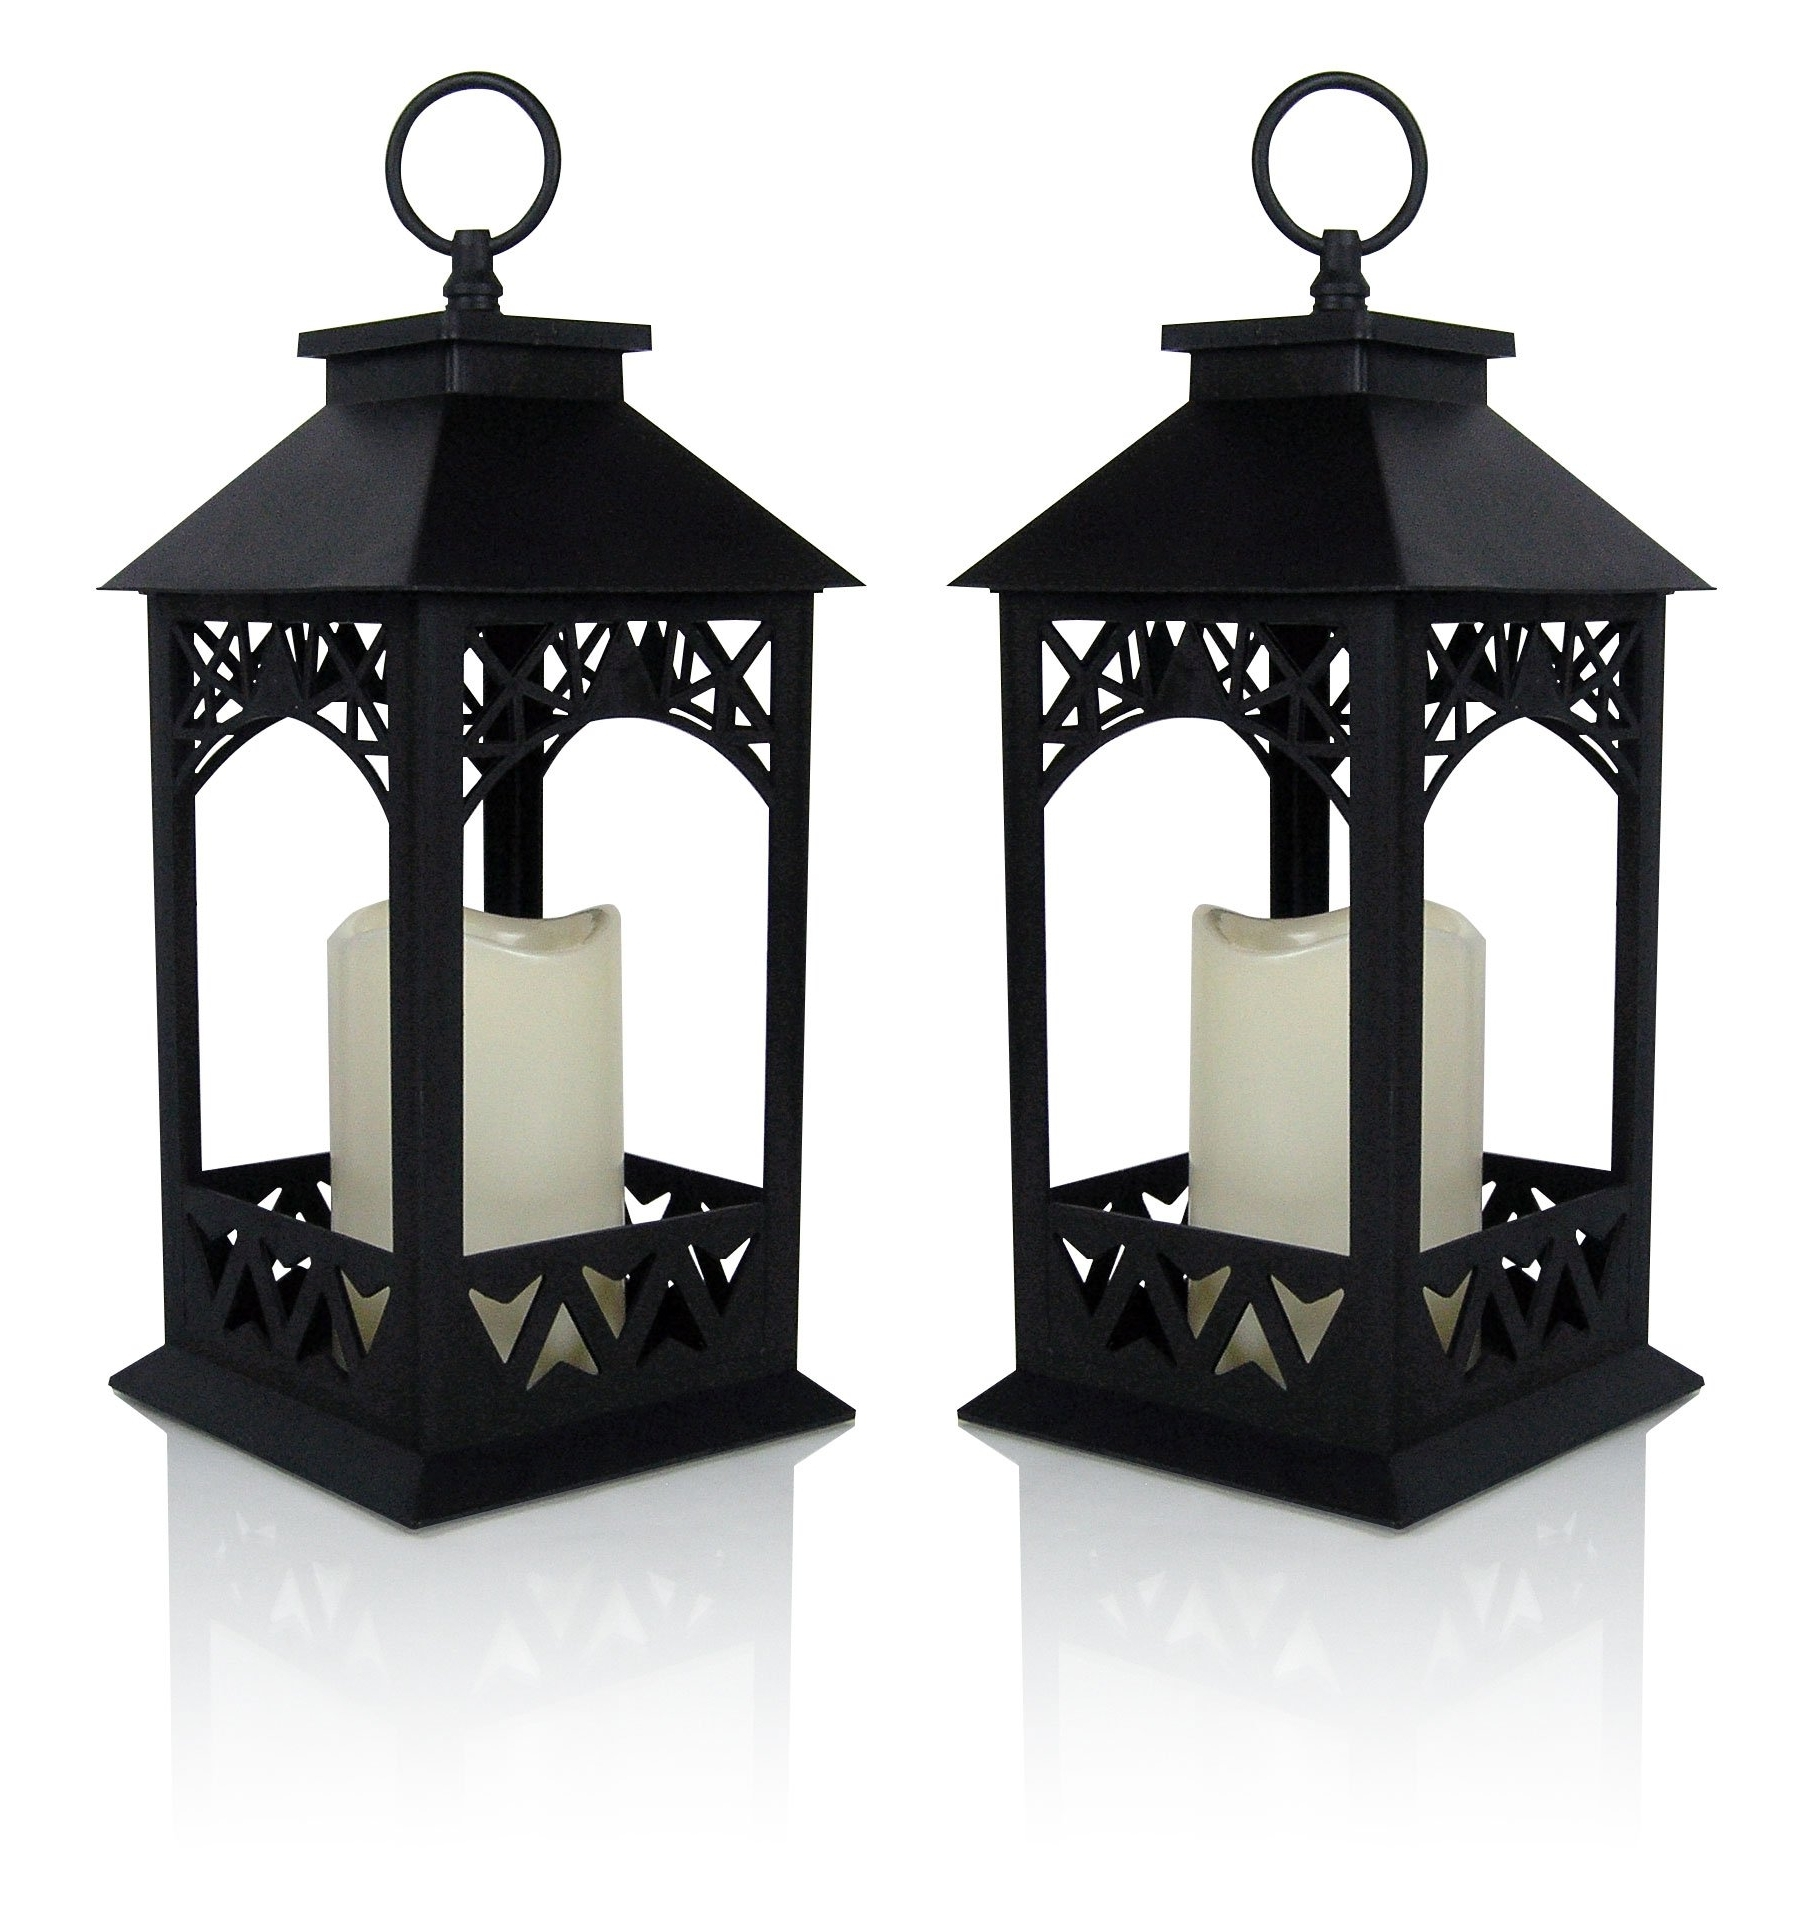 Famous Outdoor Lanterns With Flameless Candles Regarding Cheap Outdoor Lanterns Candle, Find Outdoor Lanterns Candle Deals On (View 14 of 20)